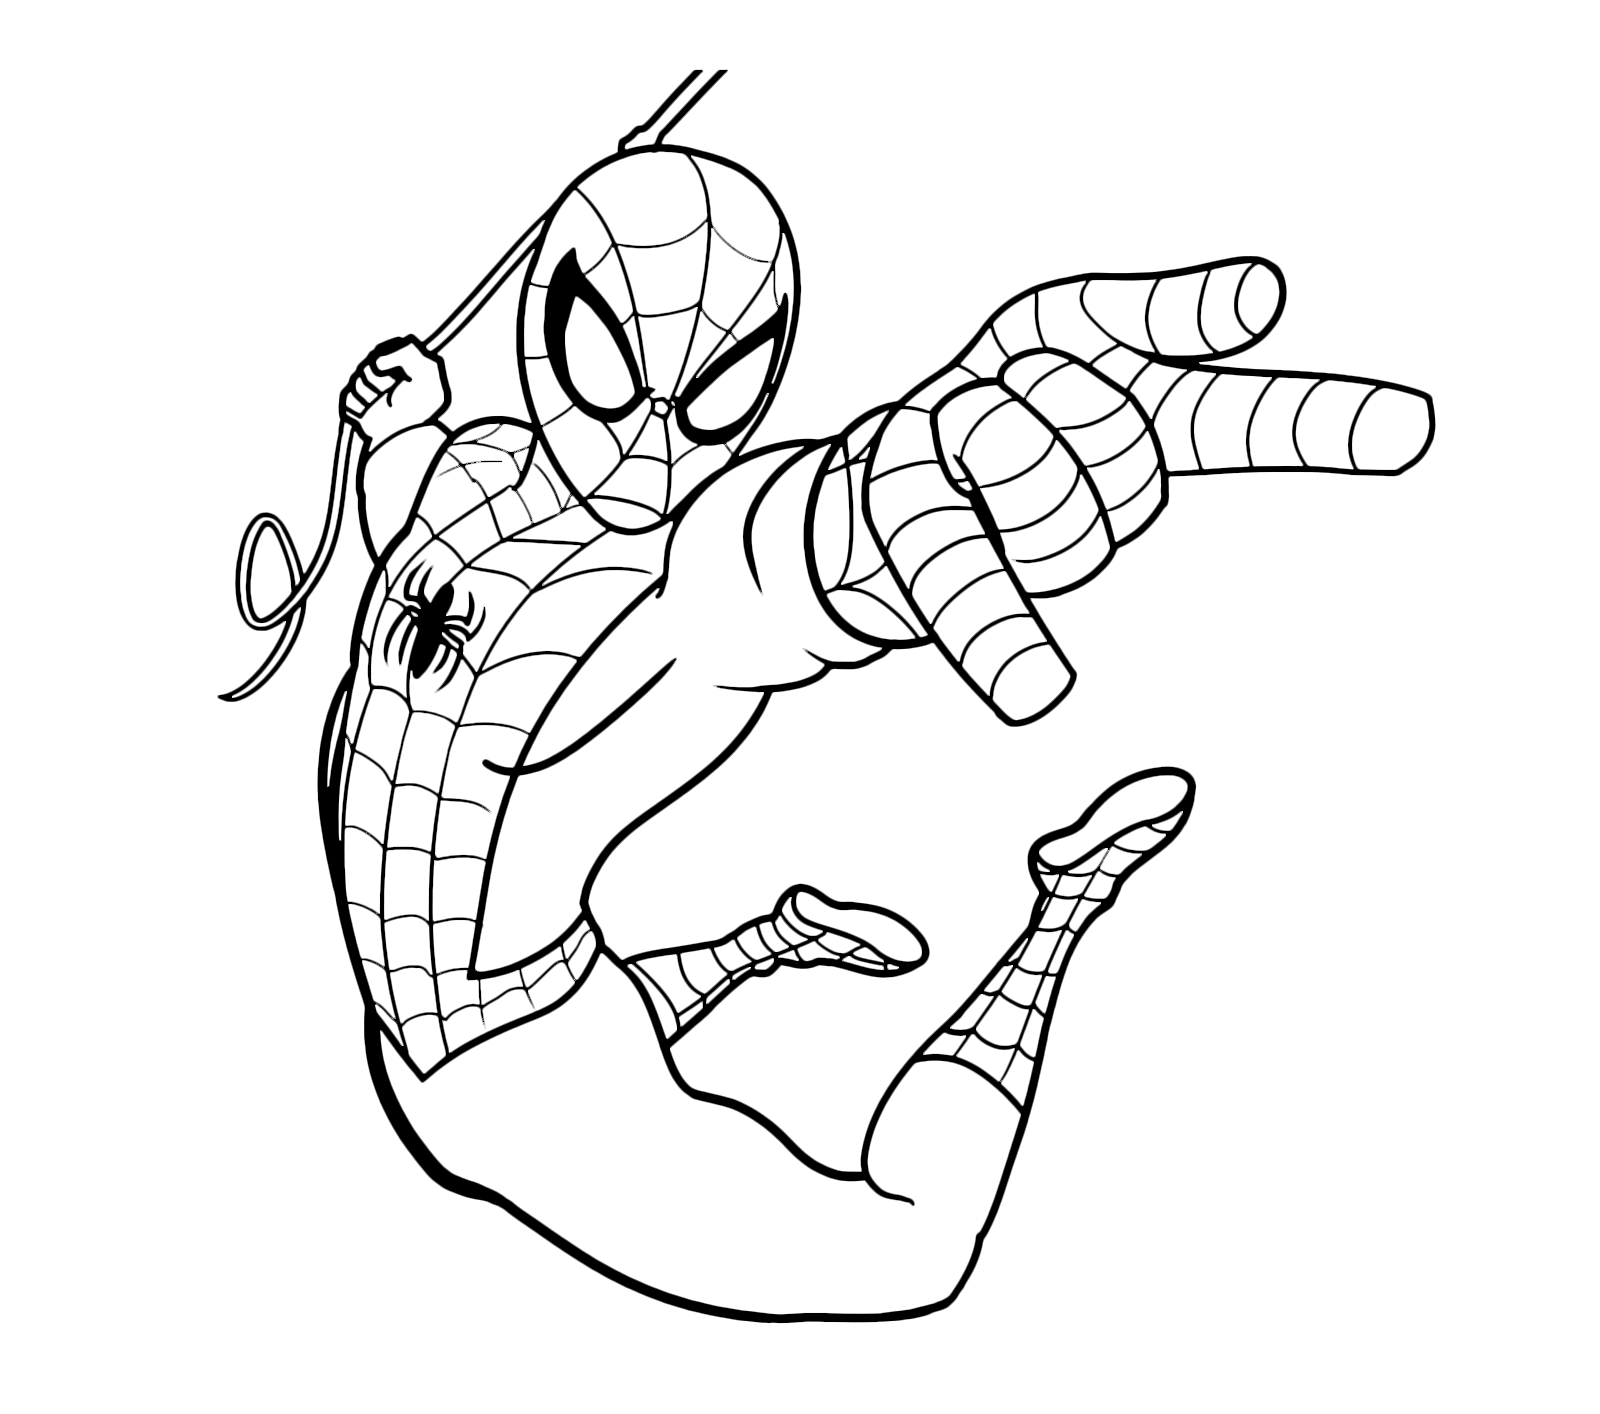 Spiderman spiderman lancia la ragnatela mentre in volo for Disegni spiderman da colorare